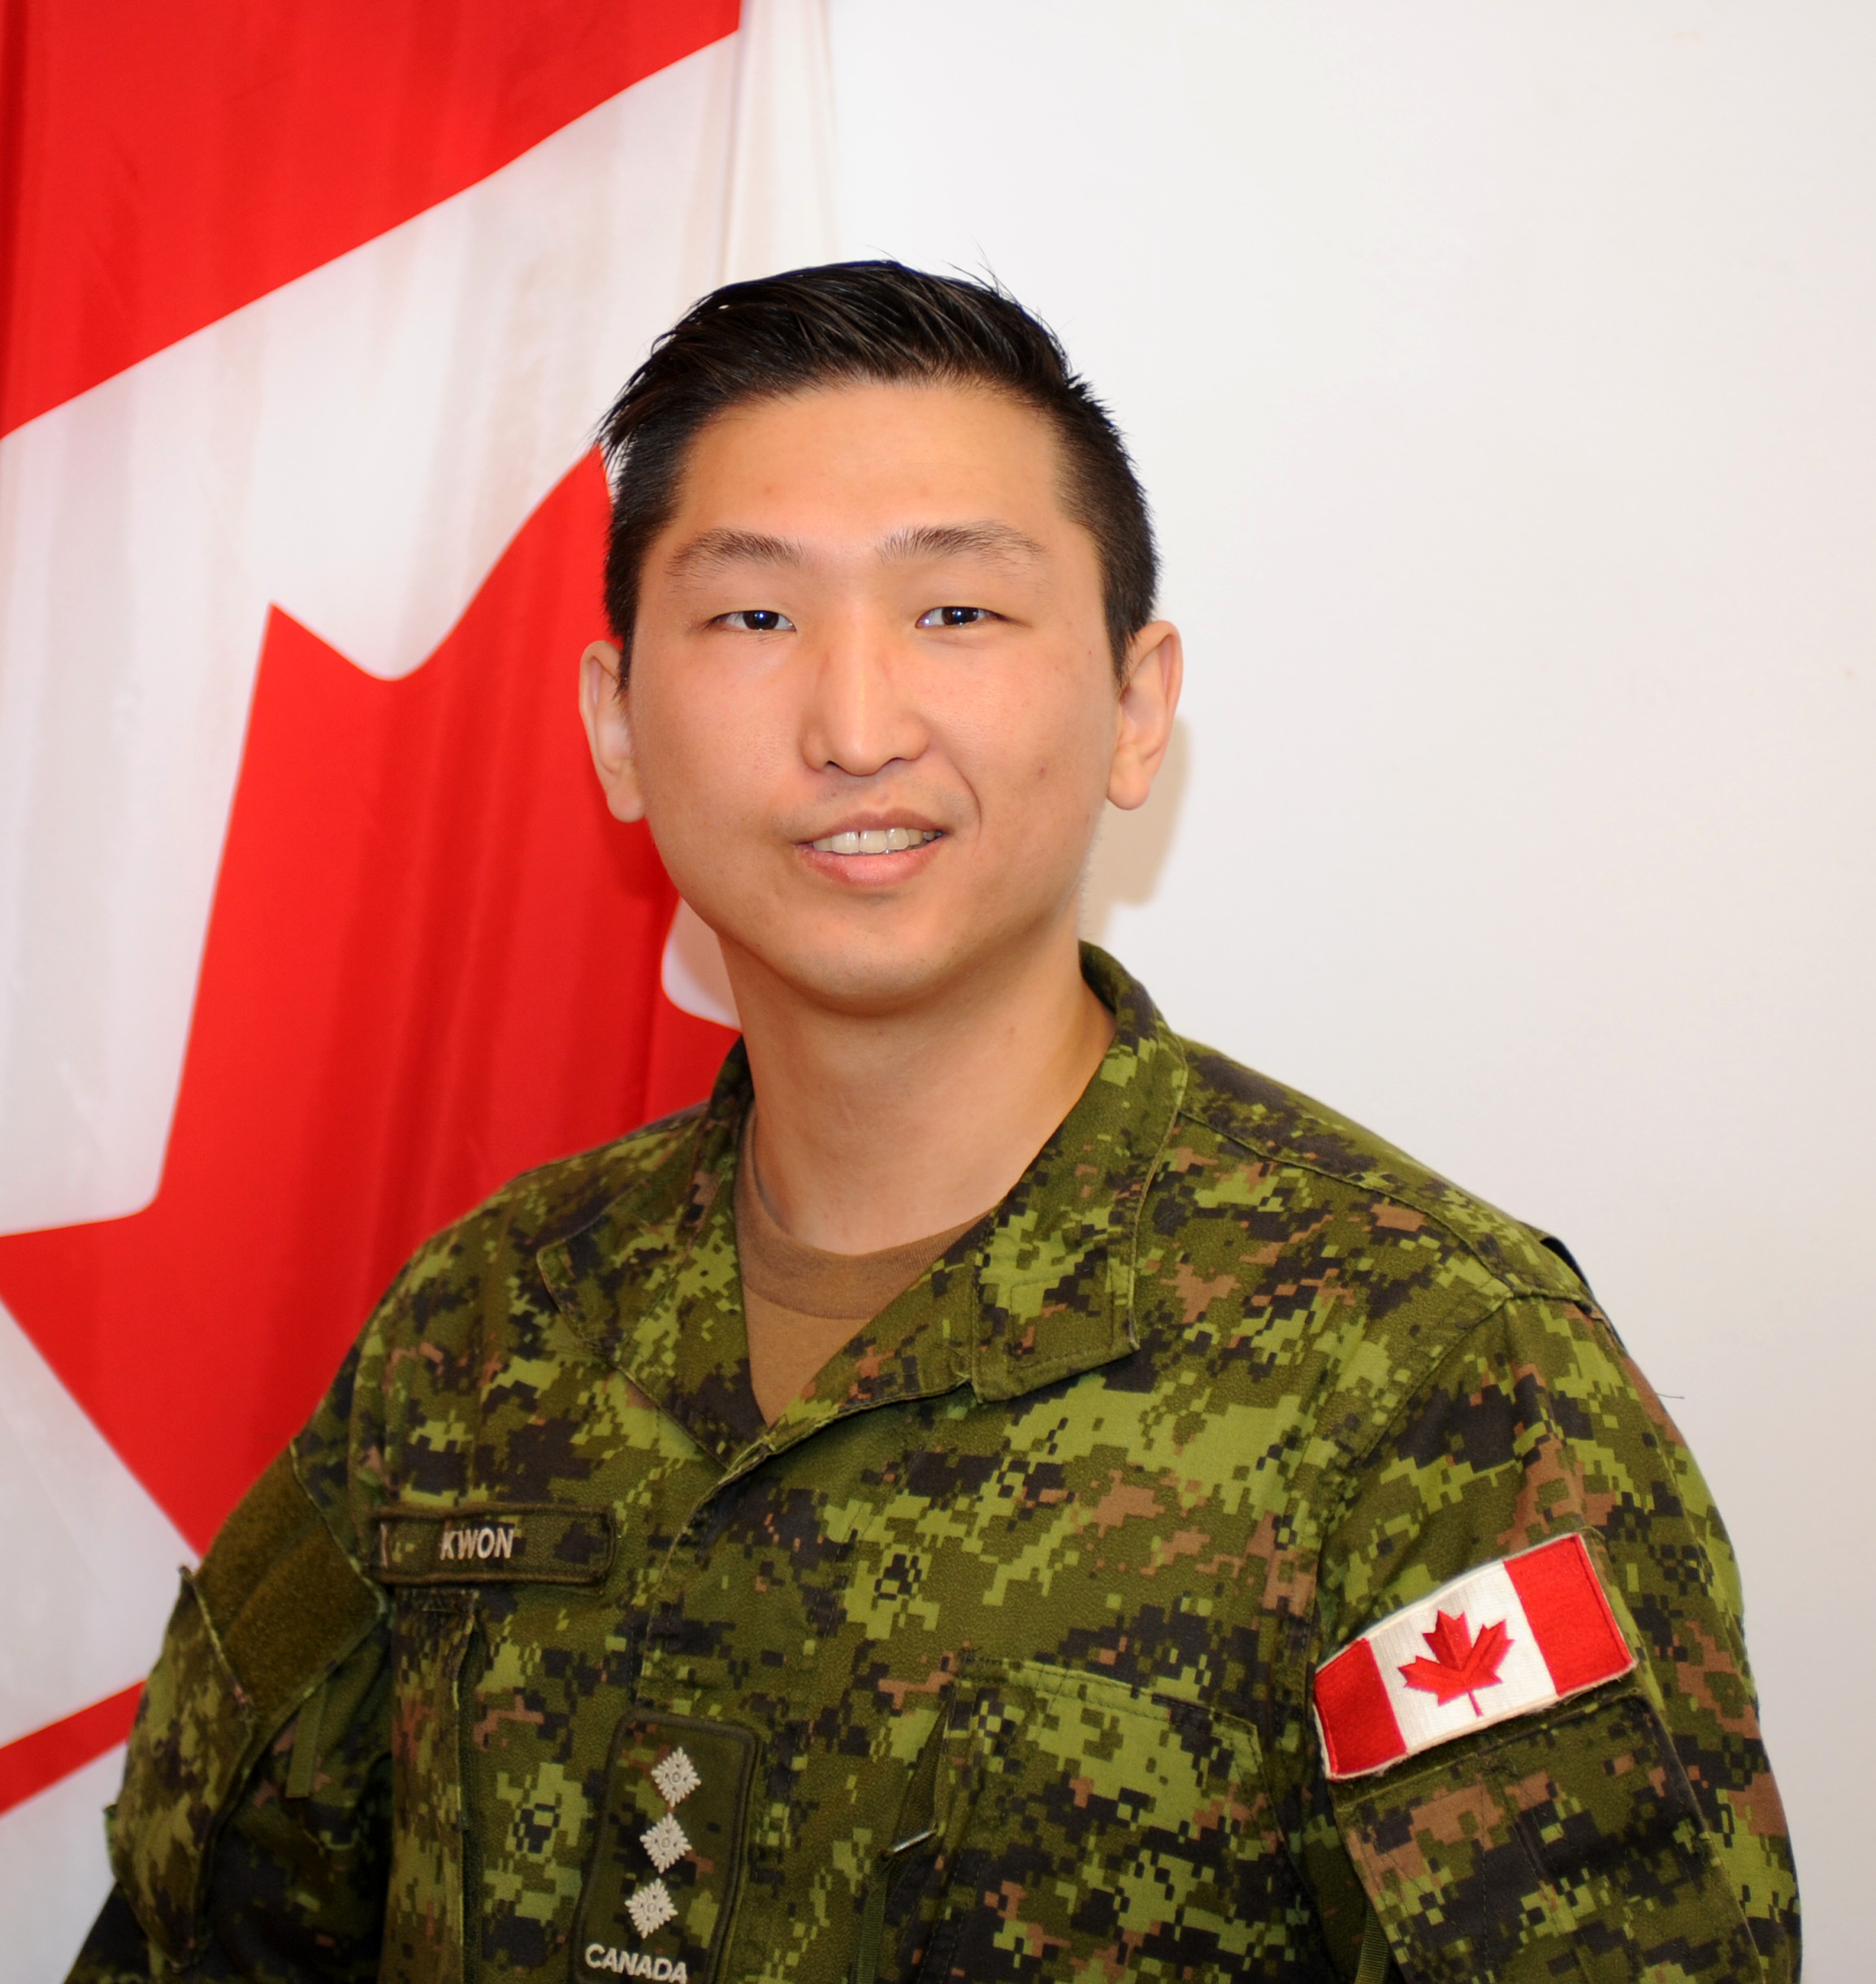 Captain Suhan Kwon. Photo by: Capt M. O'Leary, Public Affairs, 31 CBG ©DND/MDN 2016